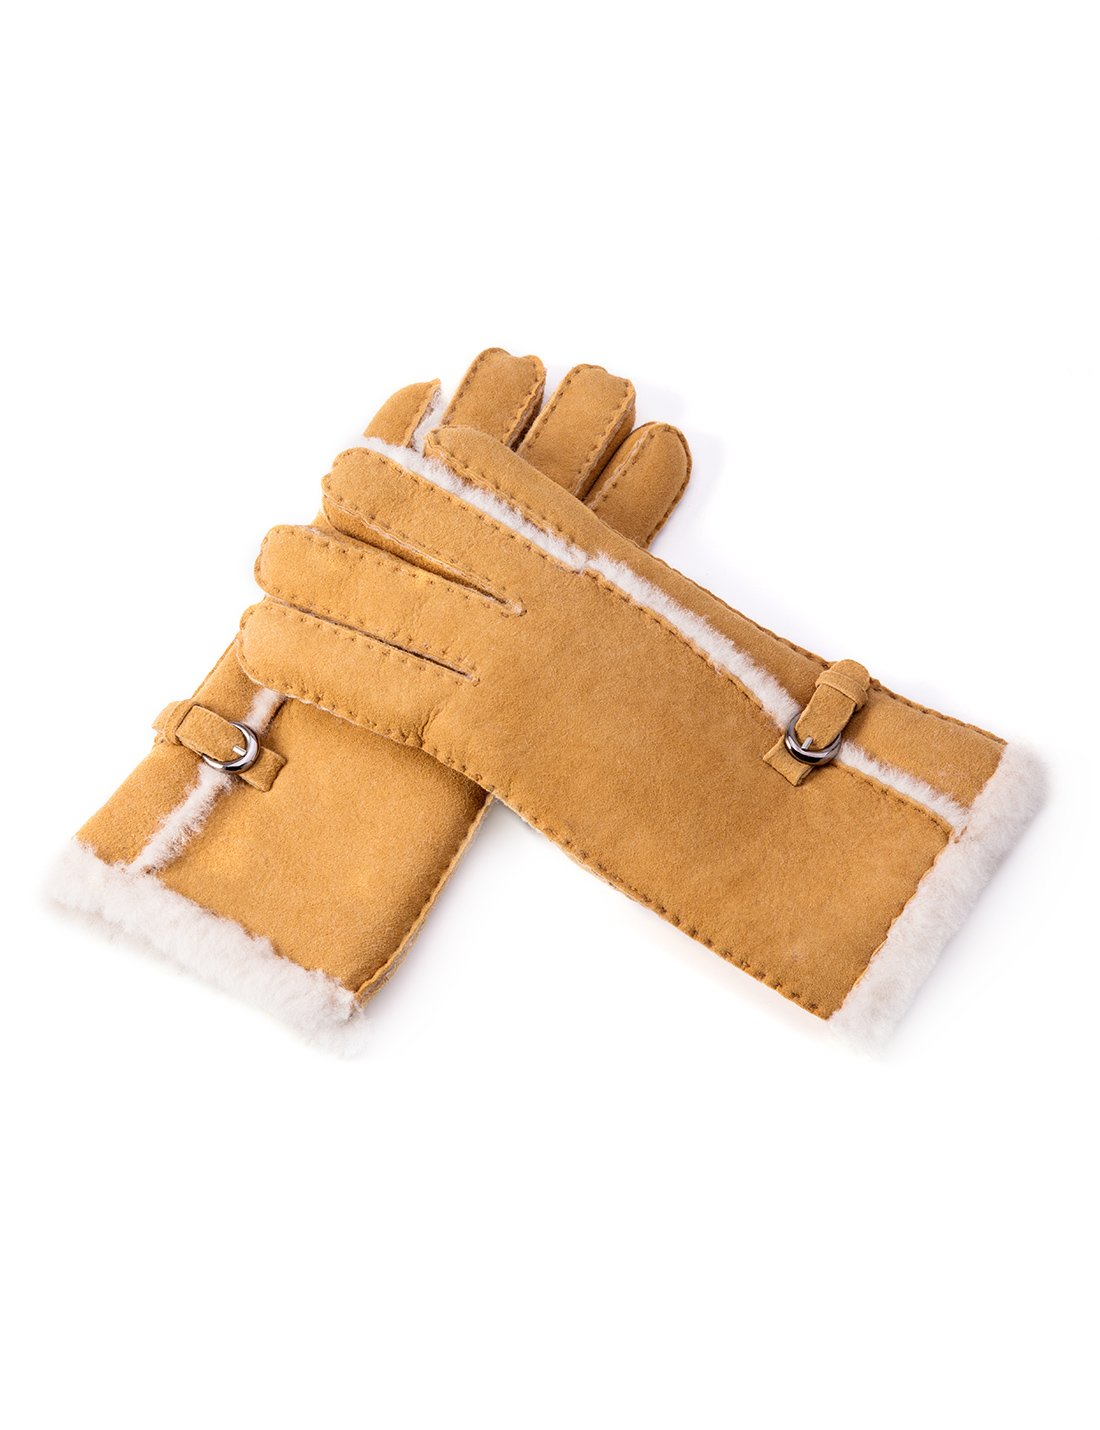 YISEVEN Women's Merino Rugged Sheepskin Shearling Leather Gloves Furry Fur Lined Soft Thick Warm Heated Lining Cuffs Winter Cold Weather Dress Driving Work Xmas Gifts, Camel Medium